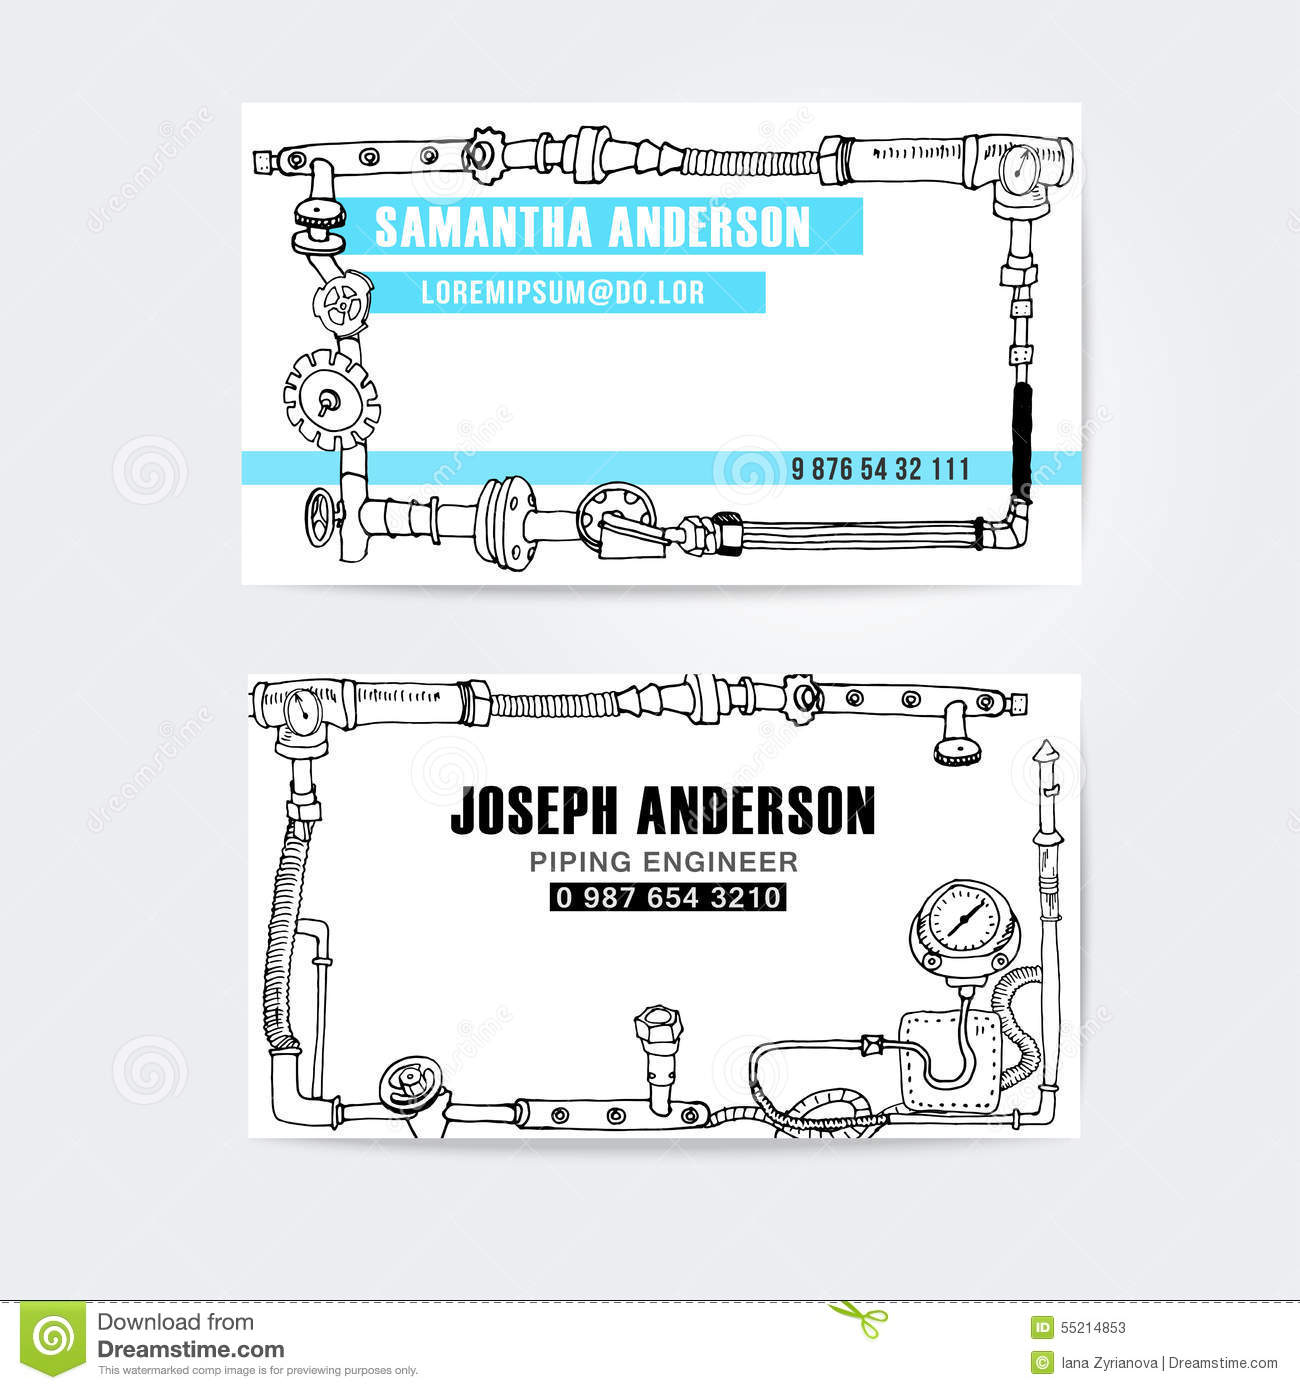 Steampunk style business cards design steampunk stock vector steampunk style business cards design steampunk magicingreecefo Gallery